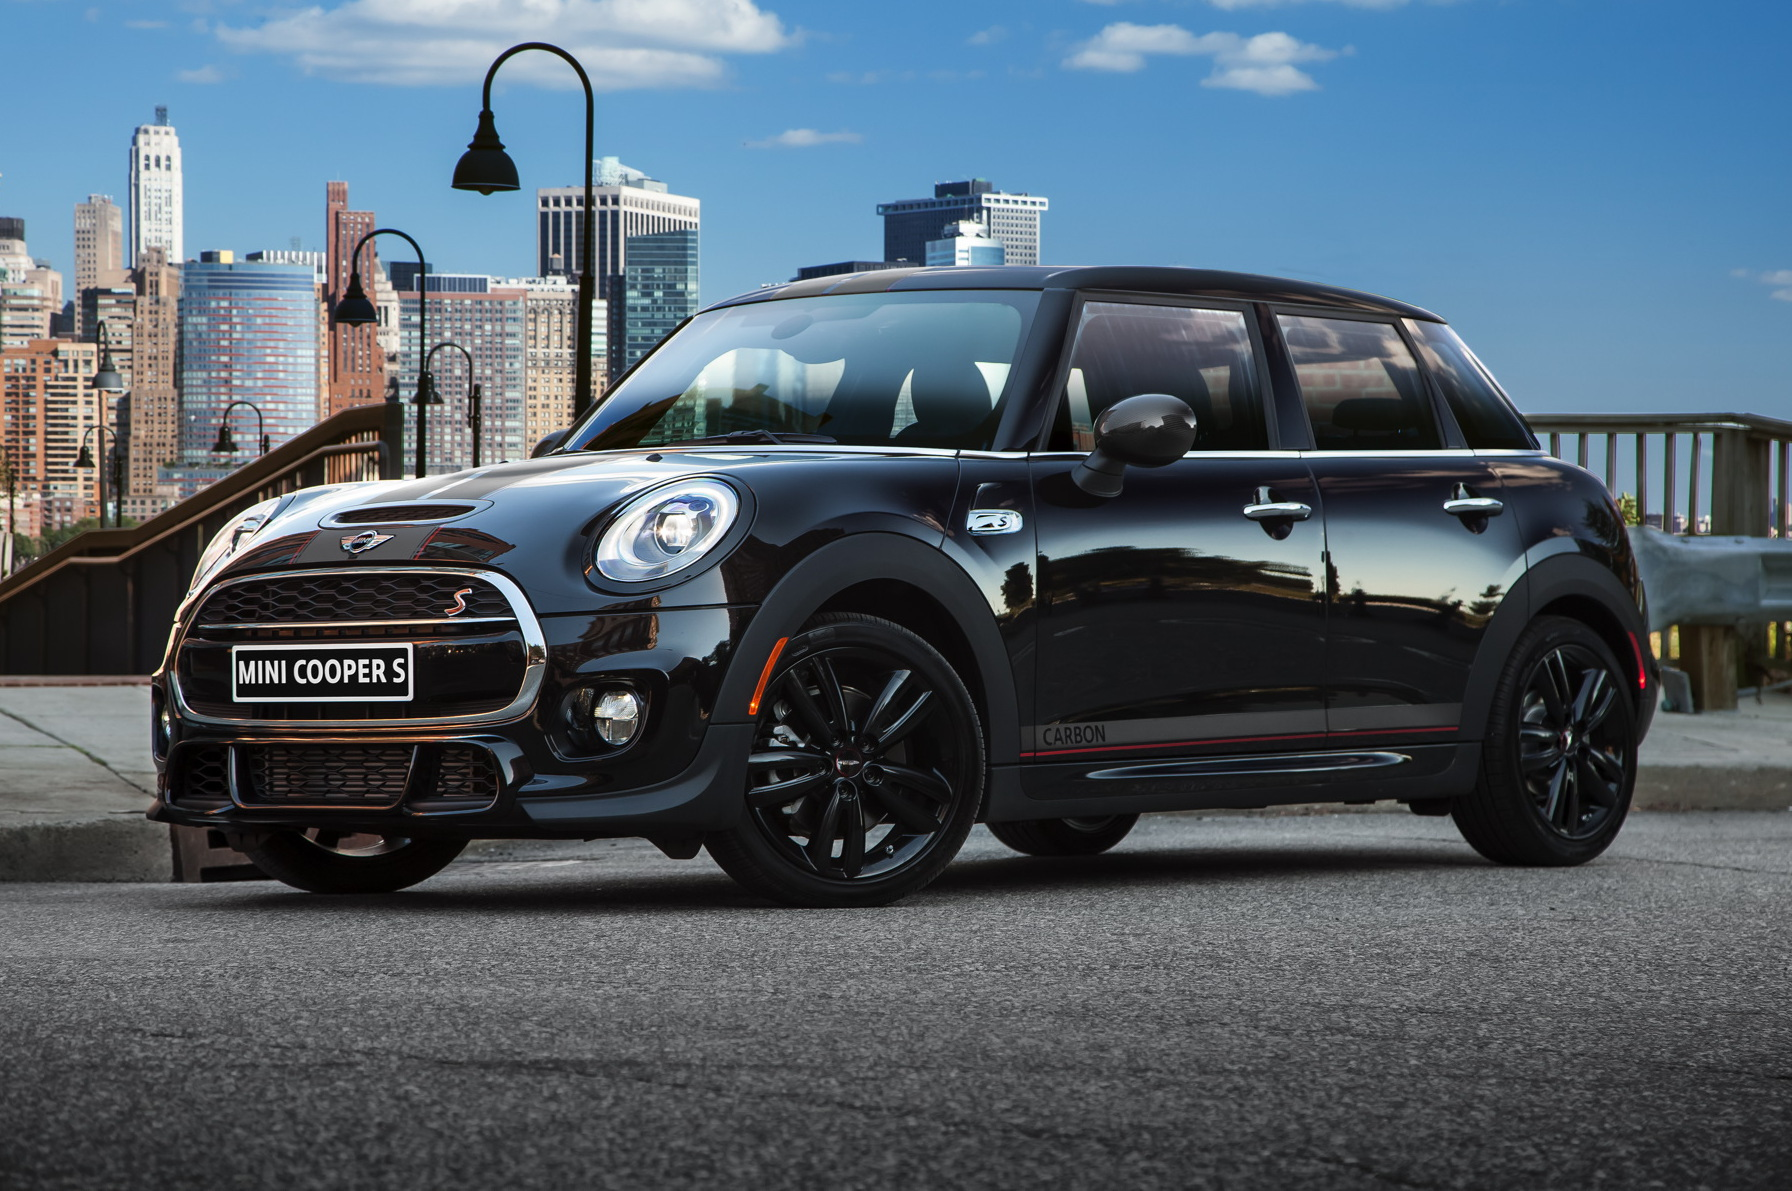 Mini Usa Has Also Released Some Photos With The Gorgeous Cooper S Carbon Edition Which Can Be Ed And Reviewed Any Time You Feel Like